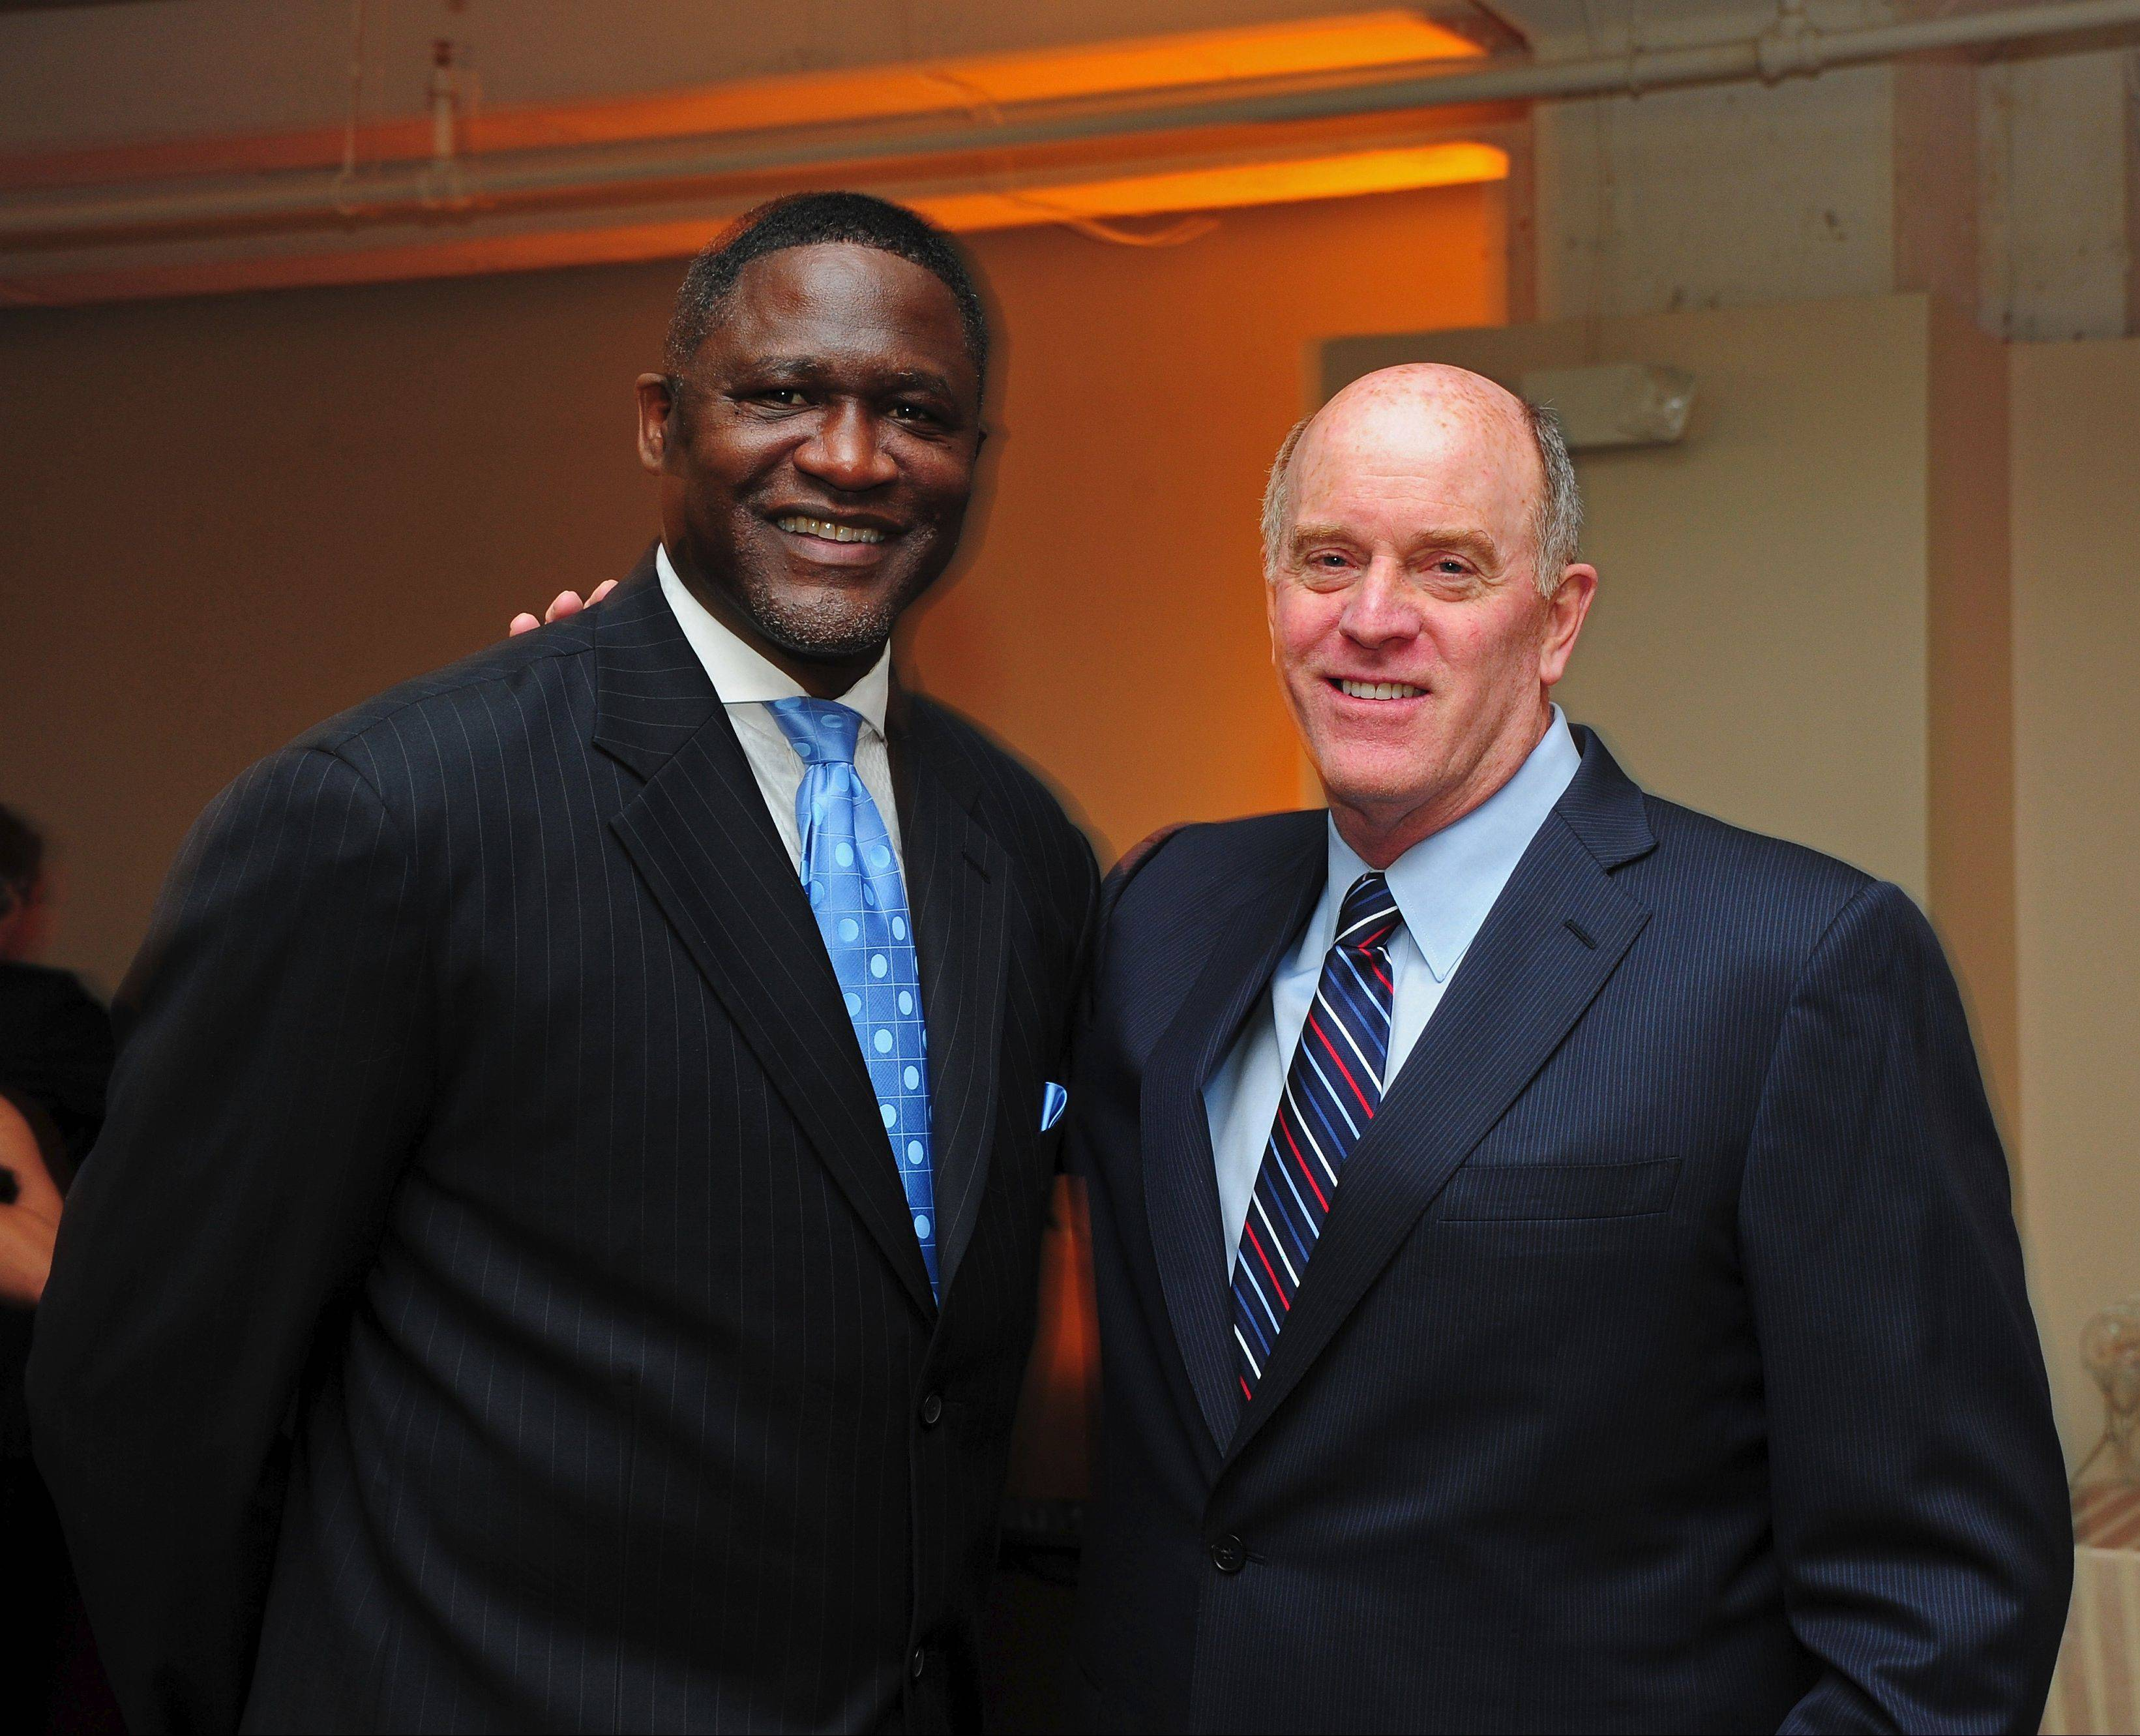 Elgin native and 1969 Elgin High School graduate Rick Sund, right, poses with NBA Hall of Fame member Dominique Wilkins last year. Sund, who has been an NBA executive for 40 years, will be honored with a special recognition award by the Elgin Sports Hall of Fame Foundation Sunday night at the organization's annual banquet and induction ceremony in the Heritage Ballroom at The Centre of Elgin.